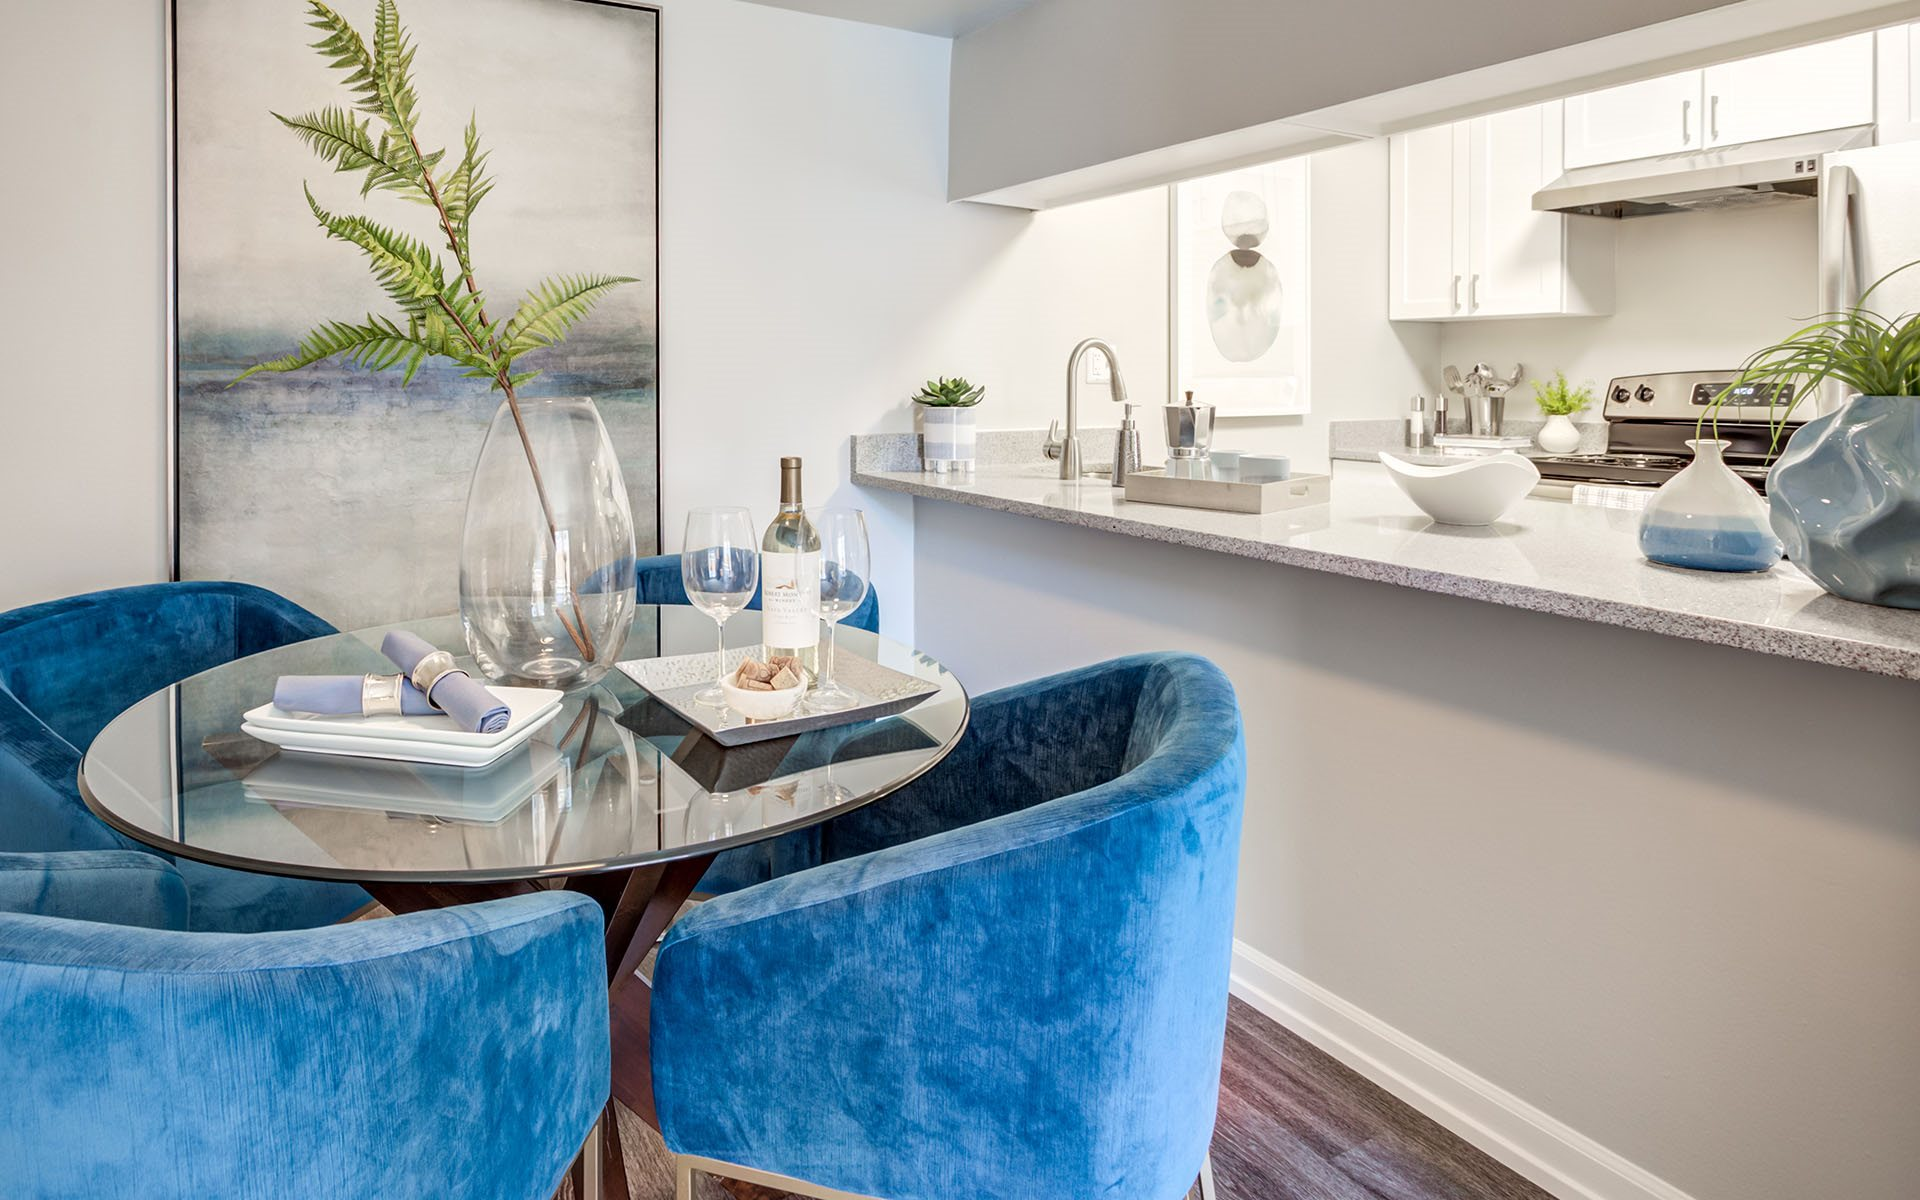 Orion Prospect | Apartments in Mount Prospect, IL